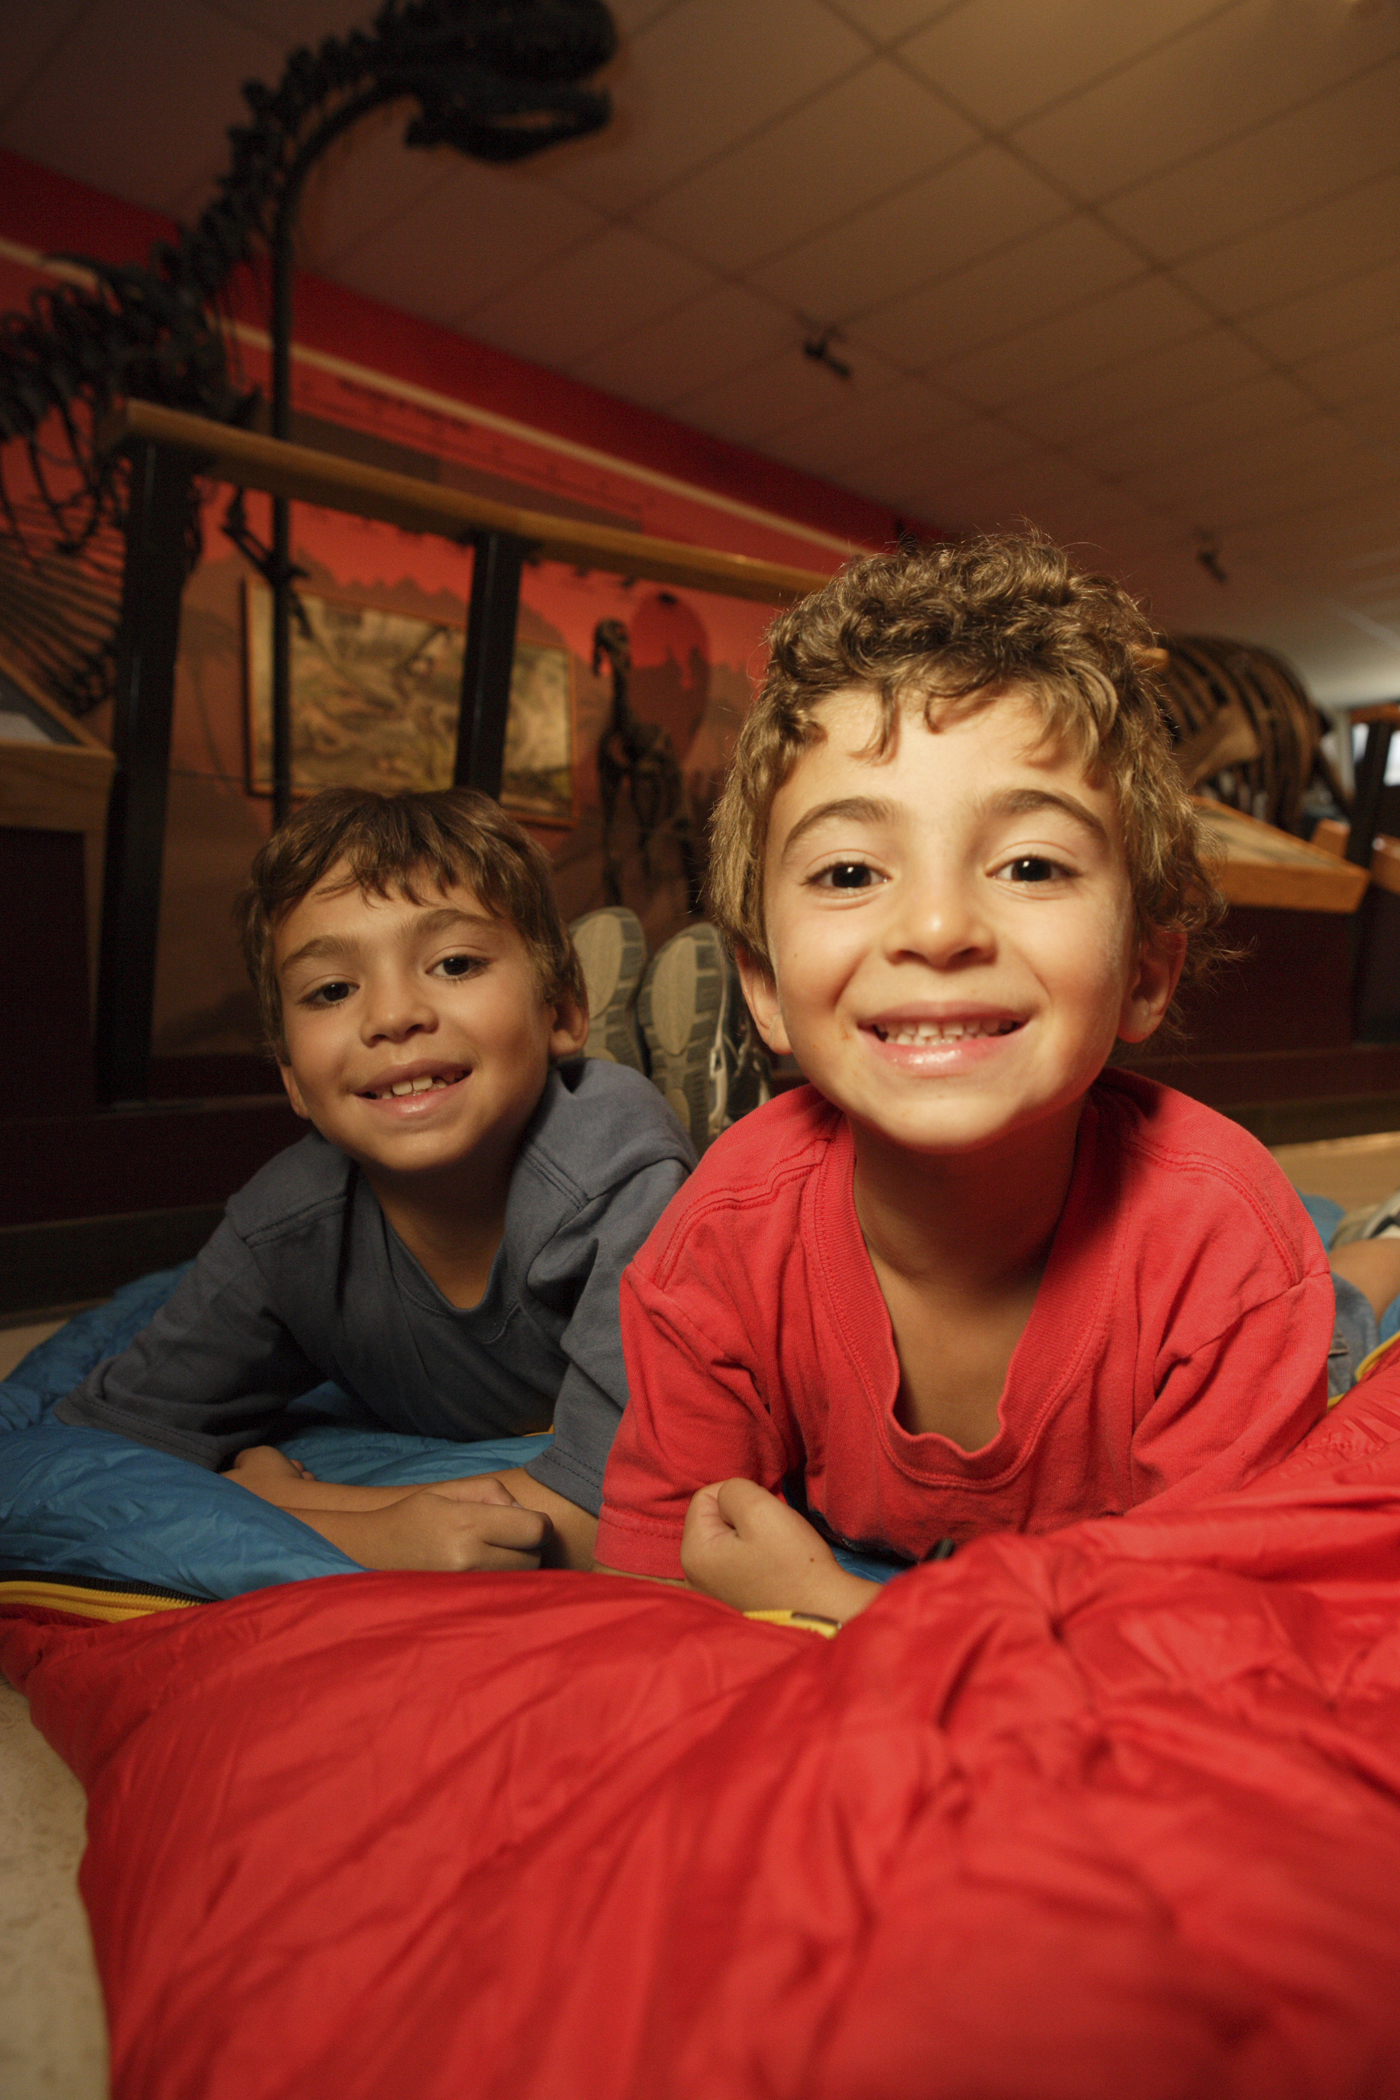 Kids can stay overnight at the Buffalo Museum of Science.